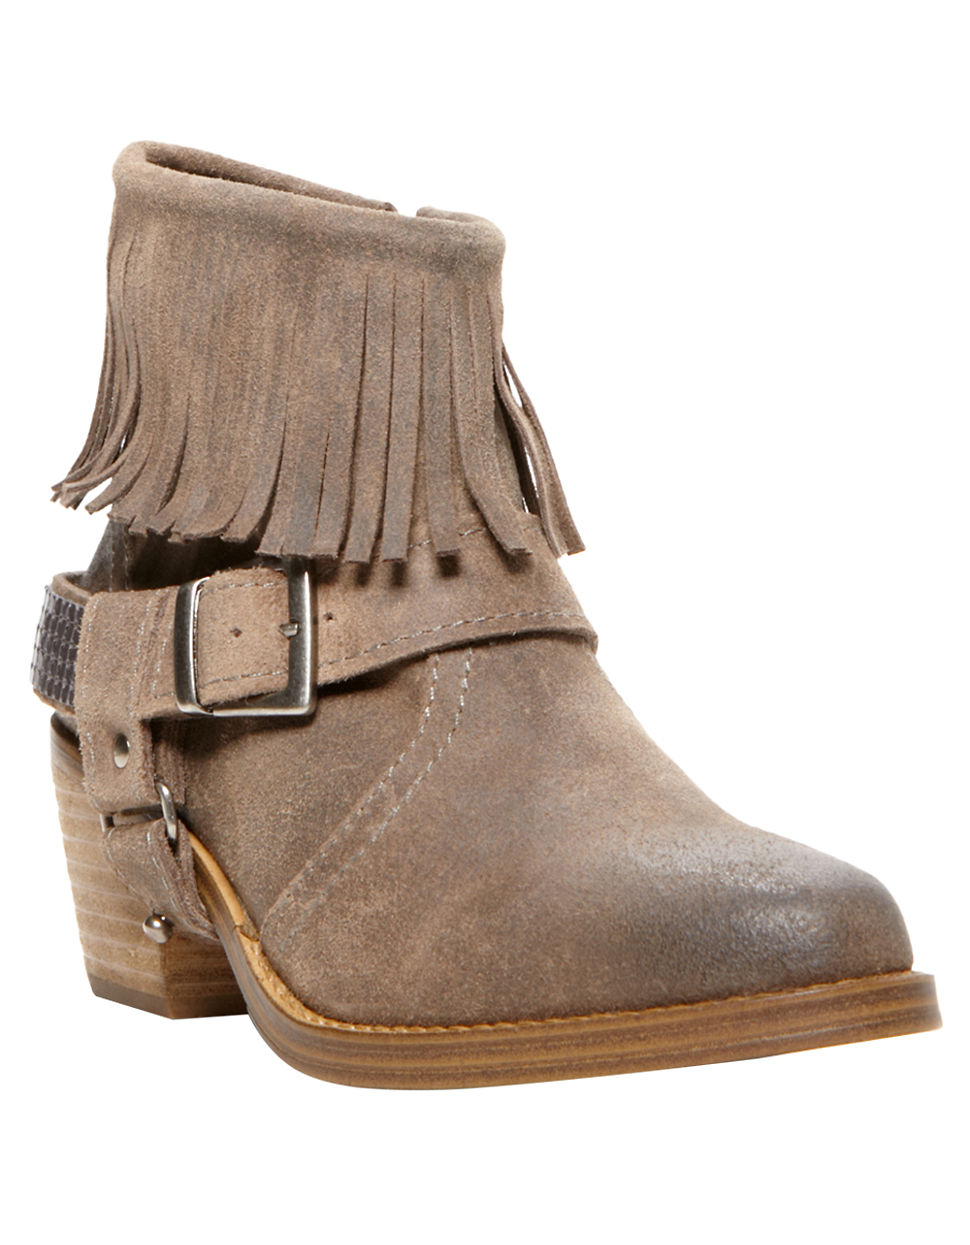 steve madden cavvo leather fringe ankle boots in beige lyst